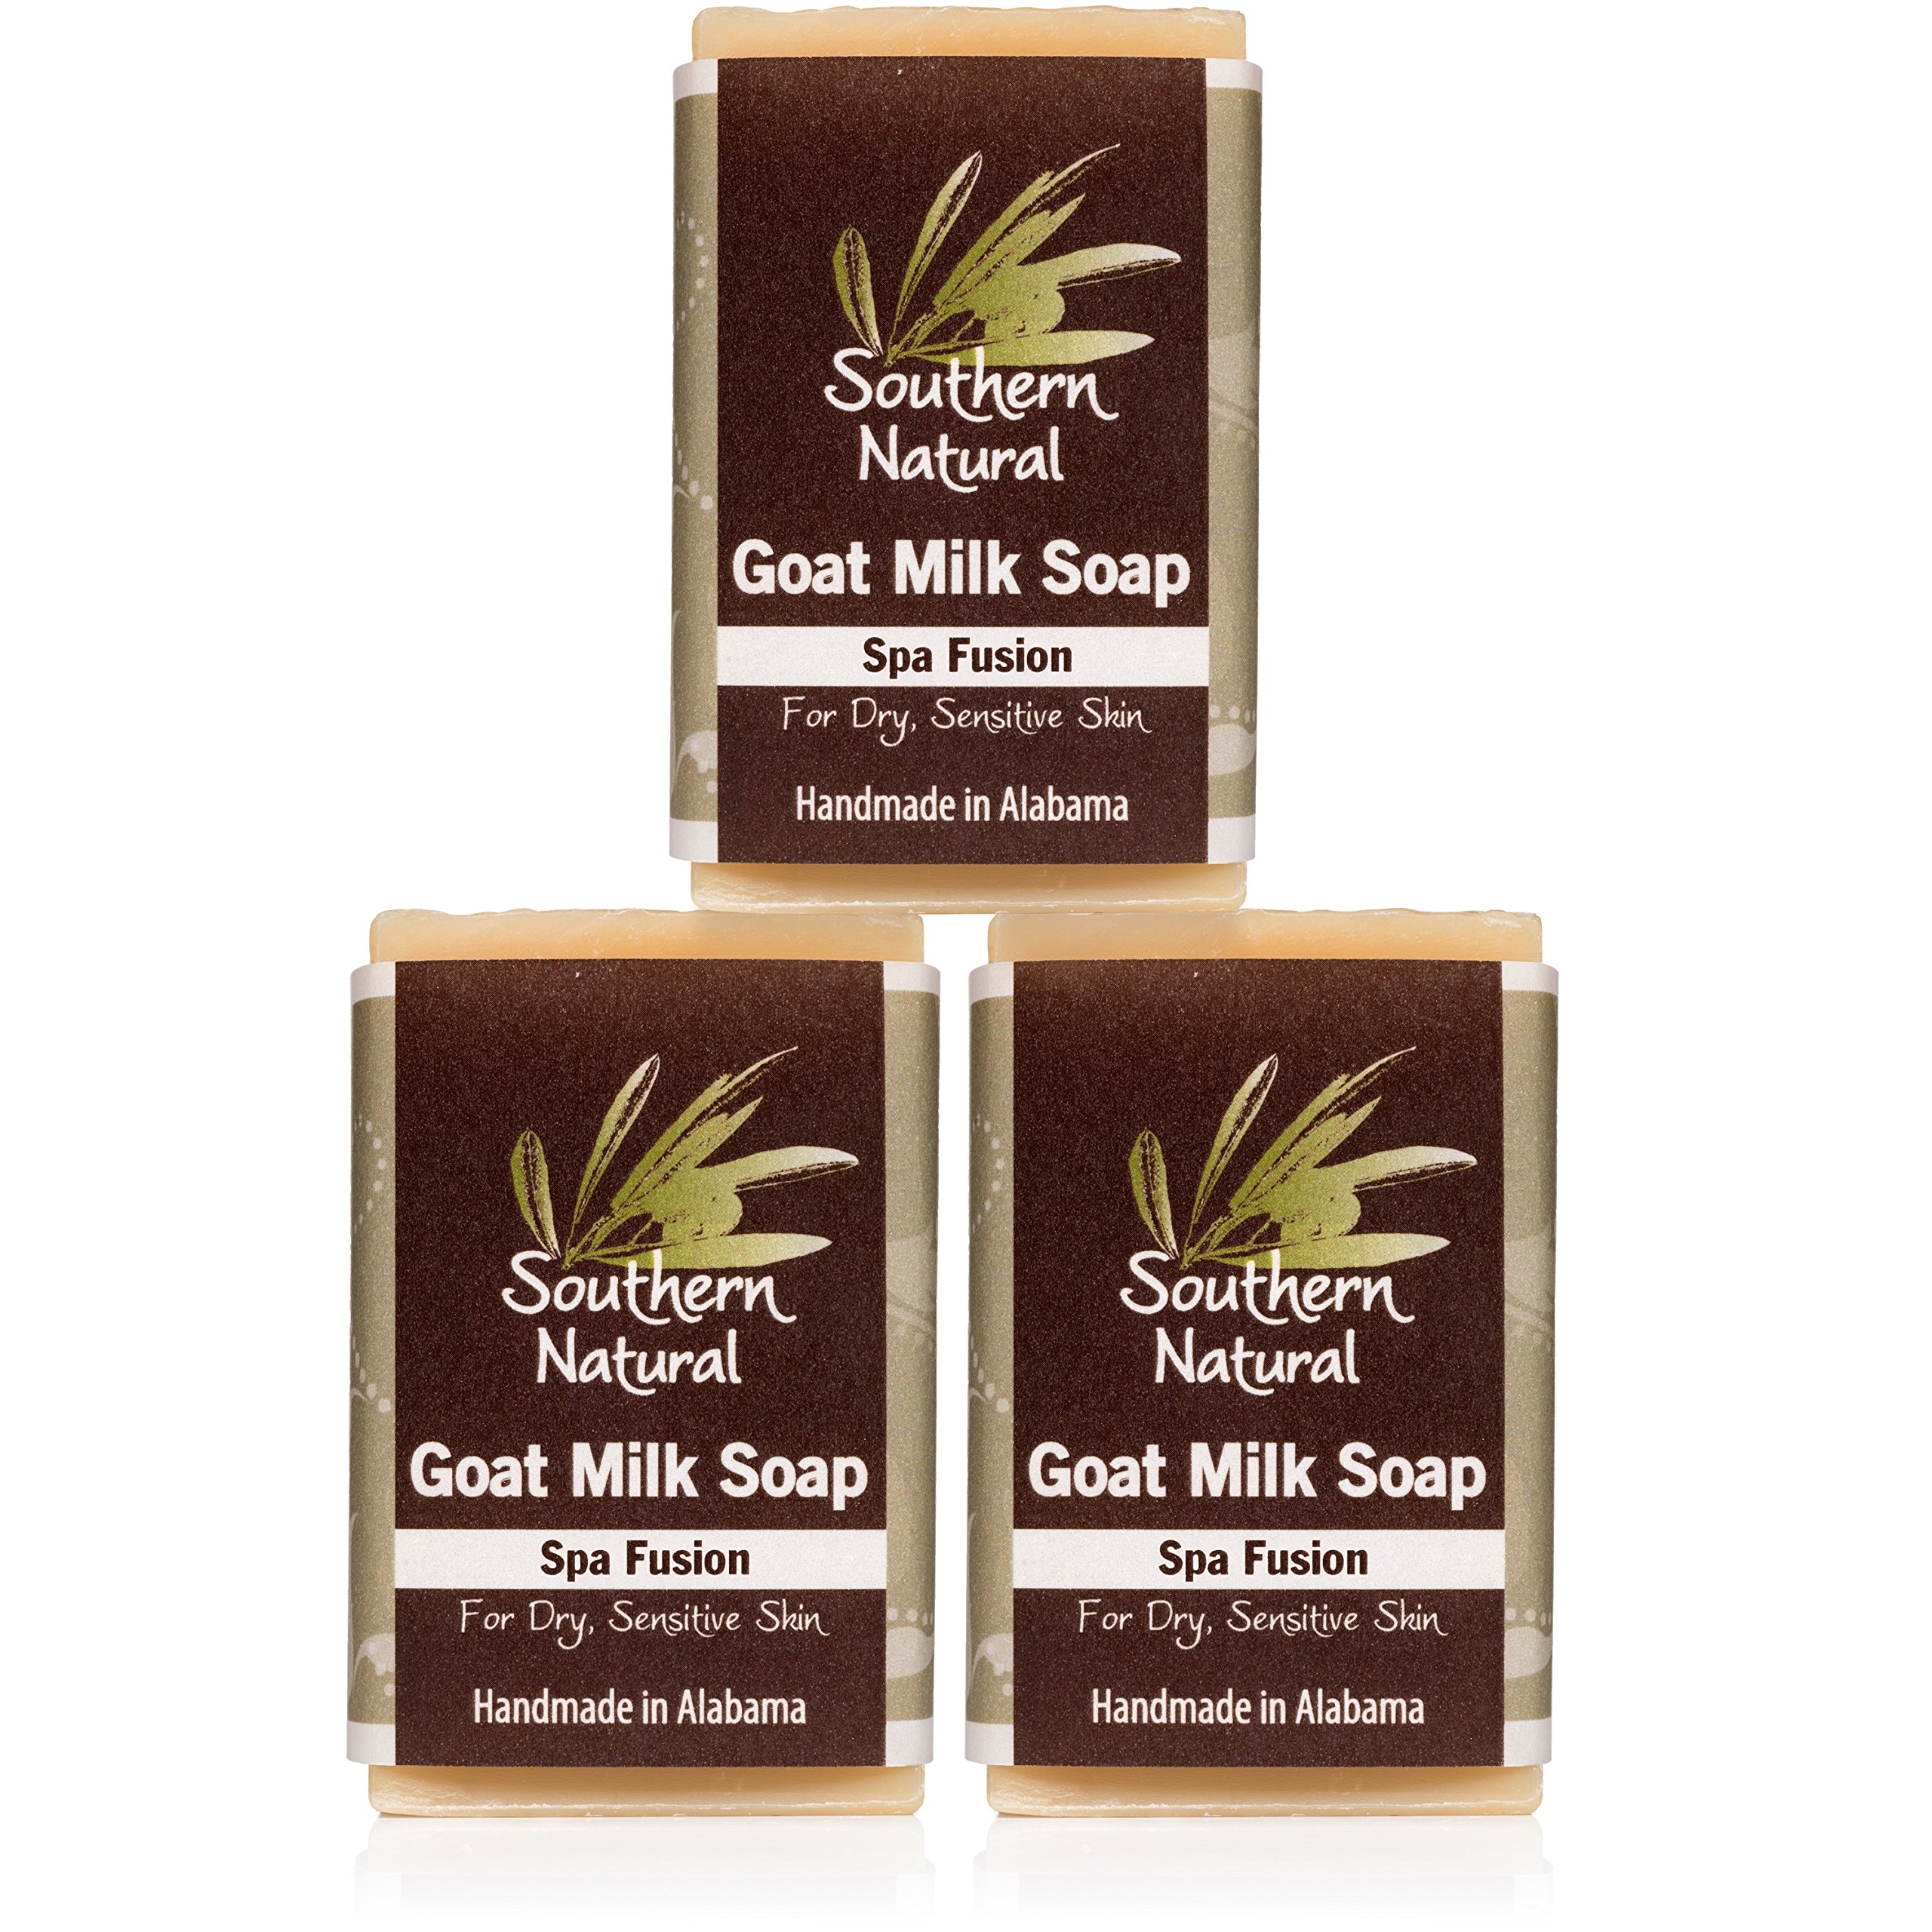 Essential Oil Blend - Handmade Goat Milk Soap Bars - For Eczema, Psoriasis & Dry Skin. 100% Natural & Gentle For All Skin Types. 3 Bar Pack (Apprx 4 oz bars).